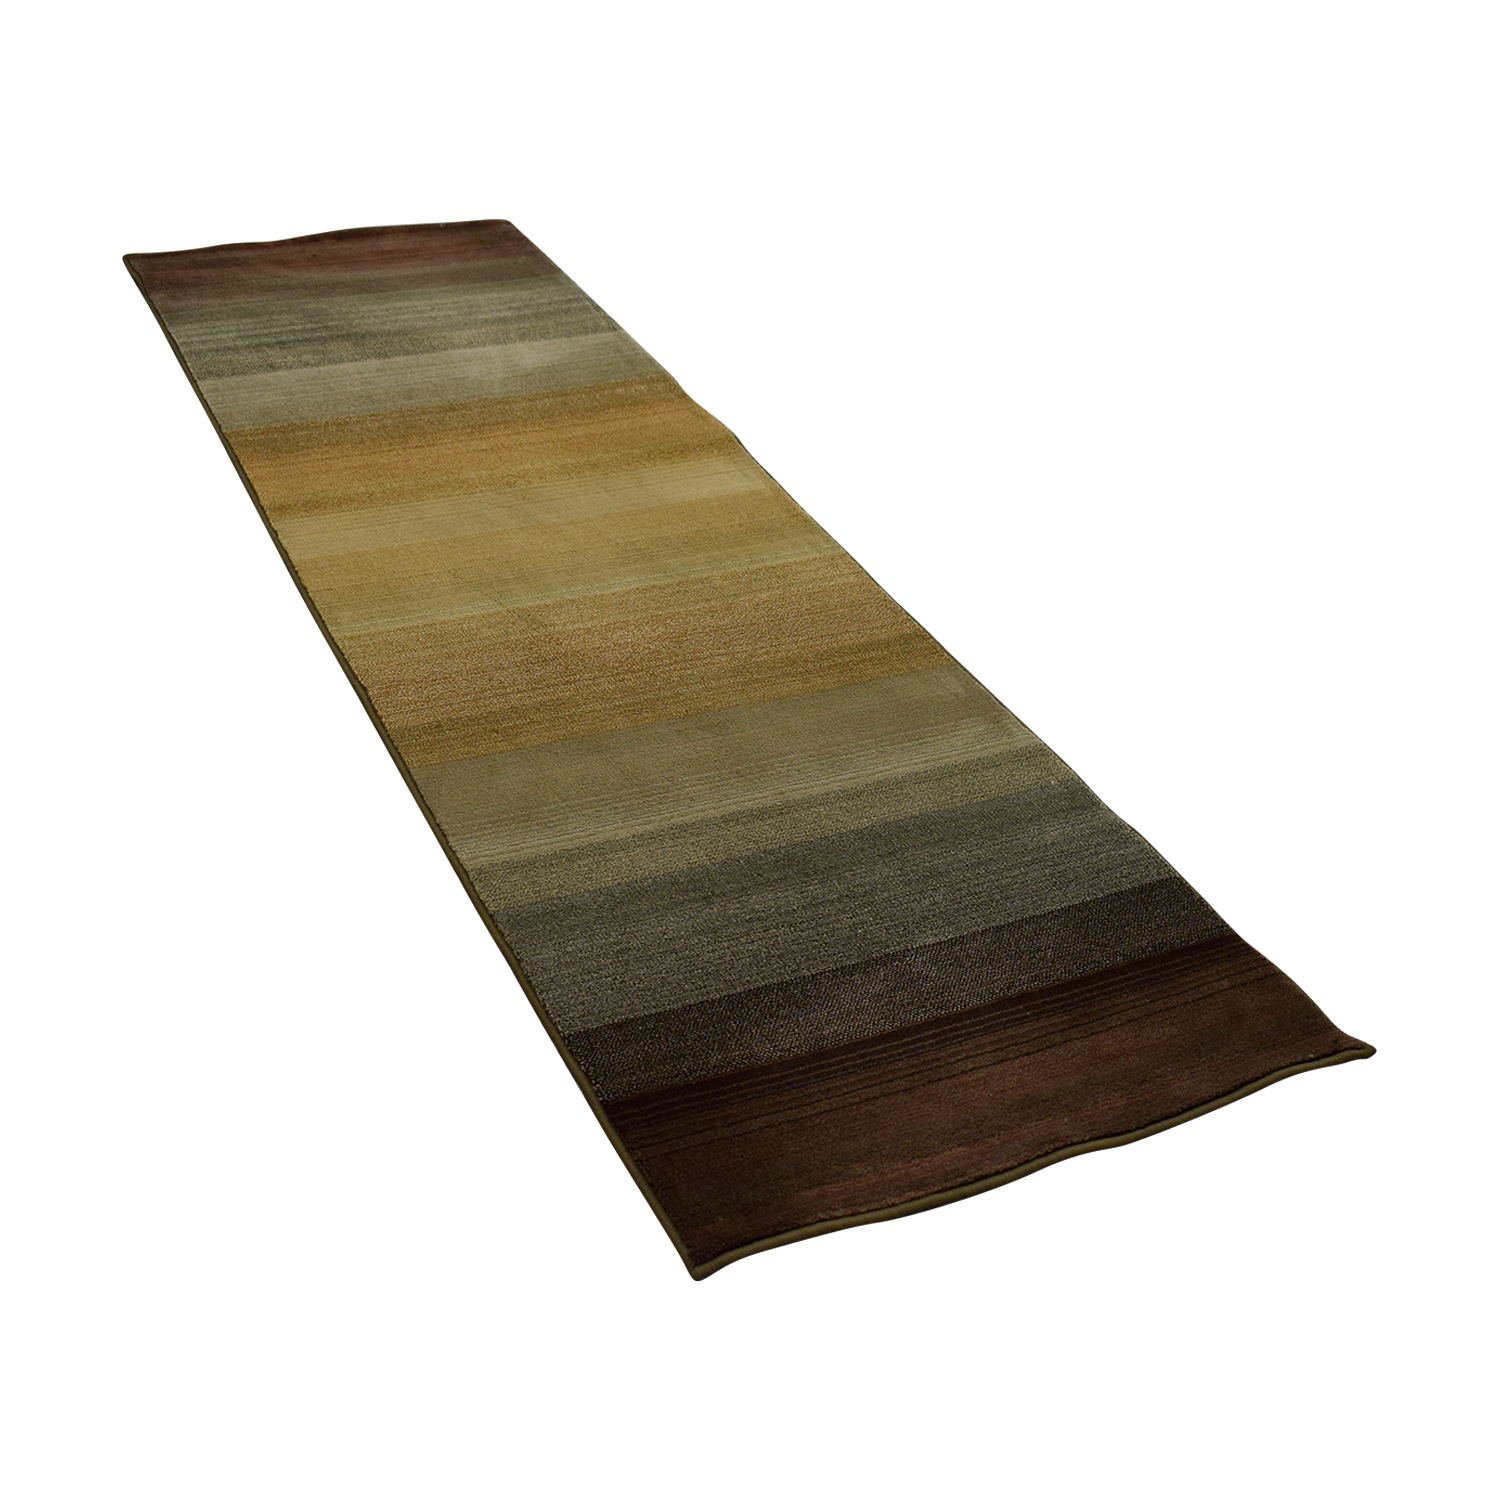 Macy's Macy's Multi-Colored Runner Rug multi